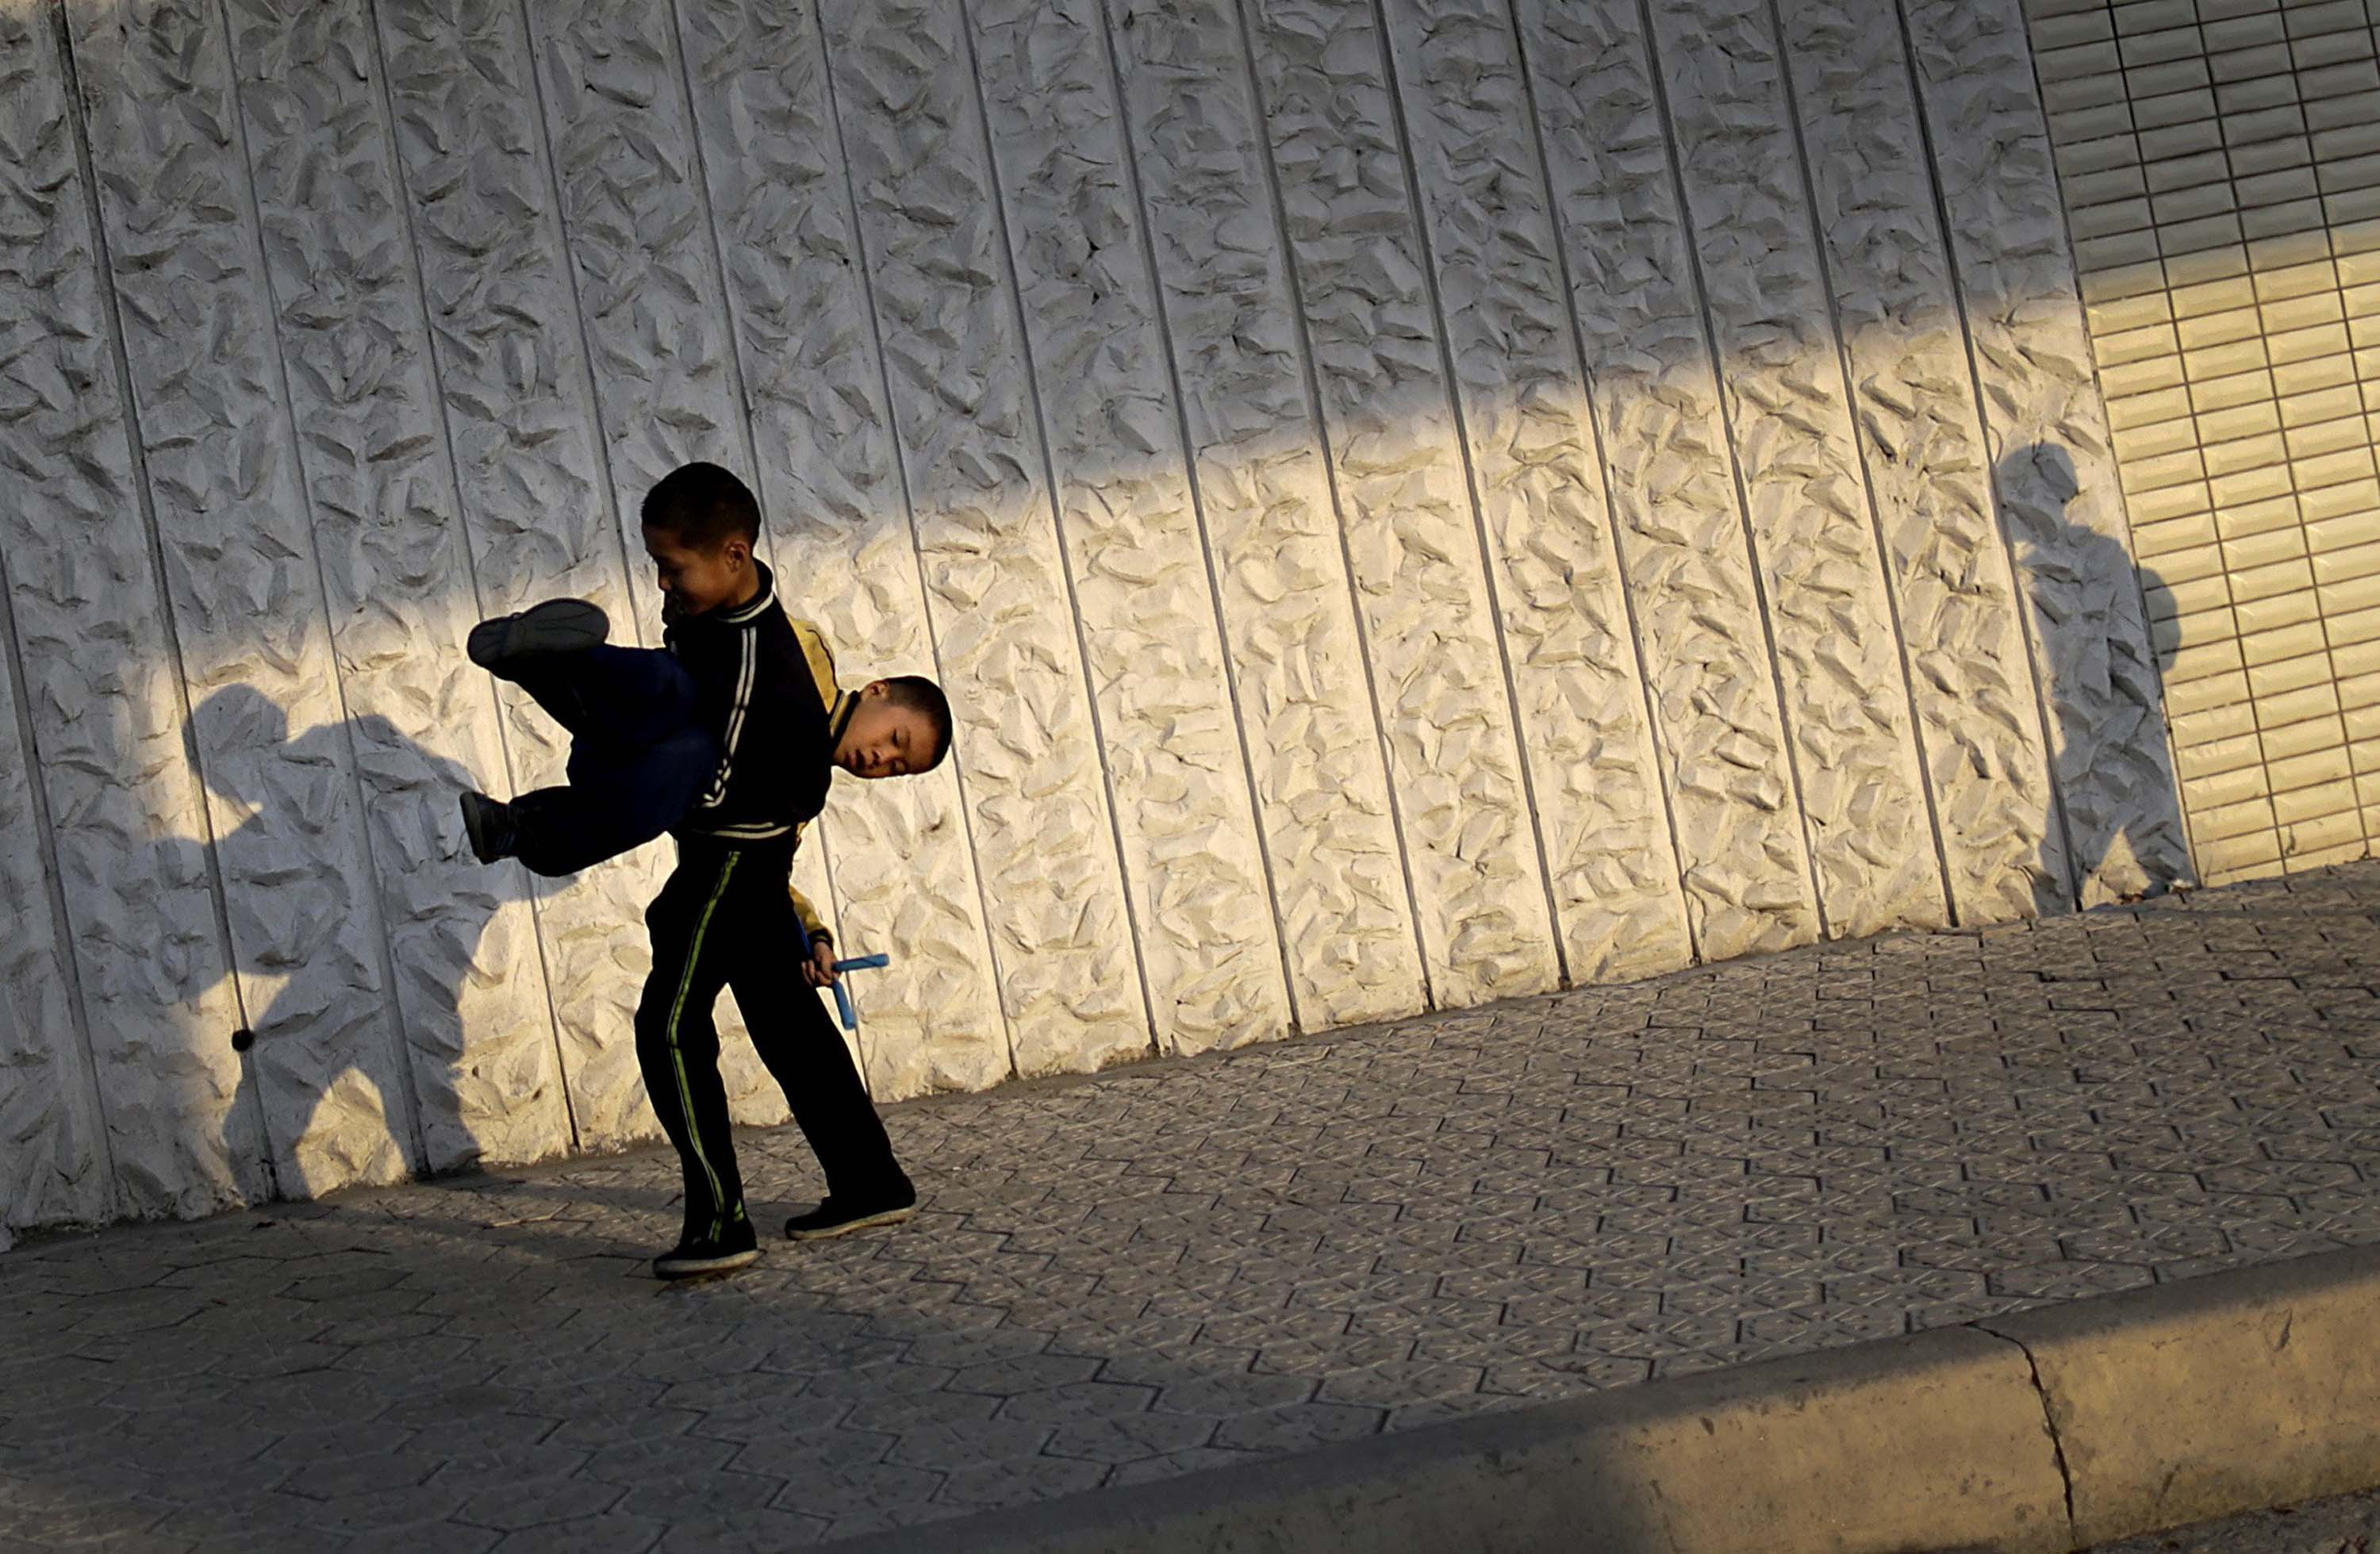 The evening sun casts shadows of North Korean boys on an apartment building facade as they make their way down a street on Oct. 22, 2014, in Pyongyang, North Korea.